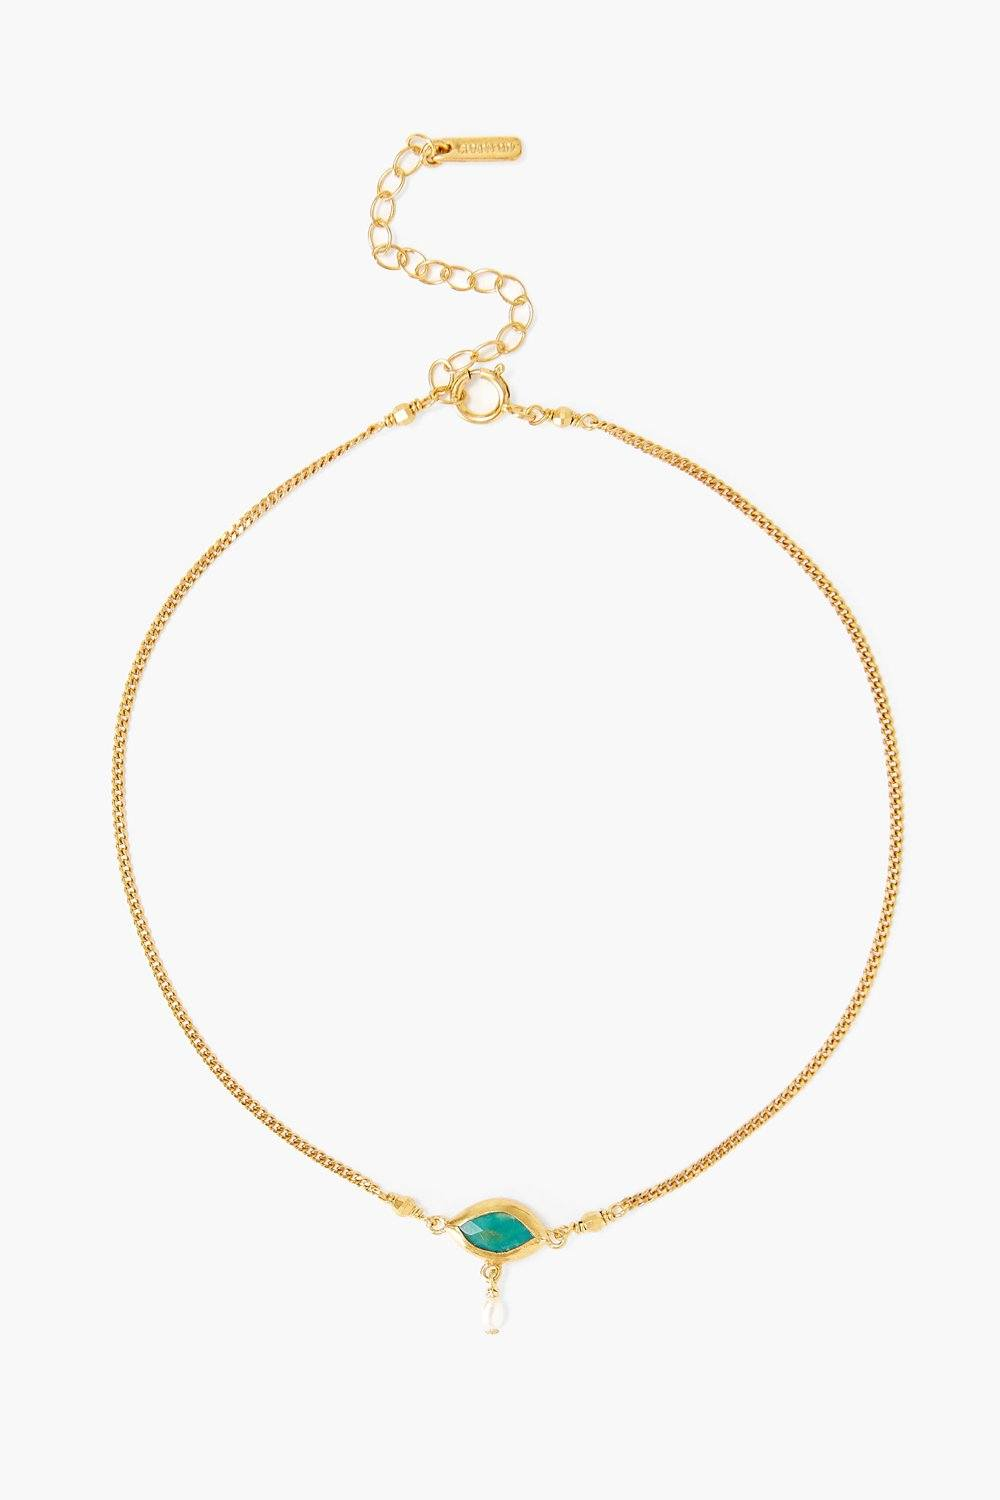 Pearl and Turquoise Evil Eye Anklet